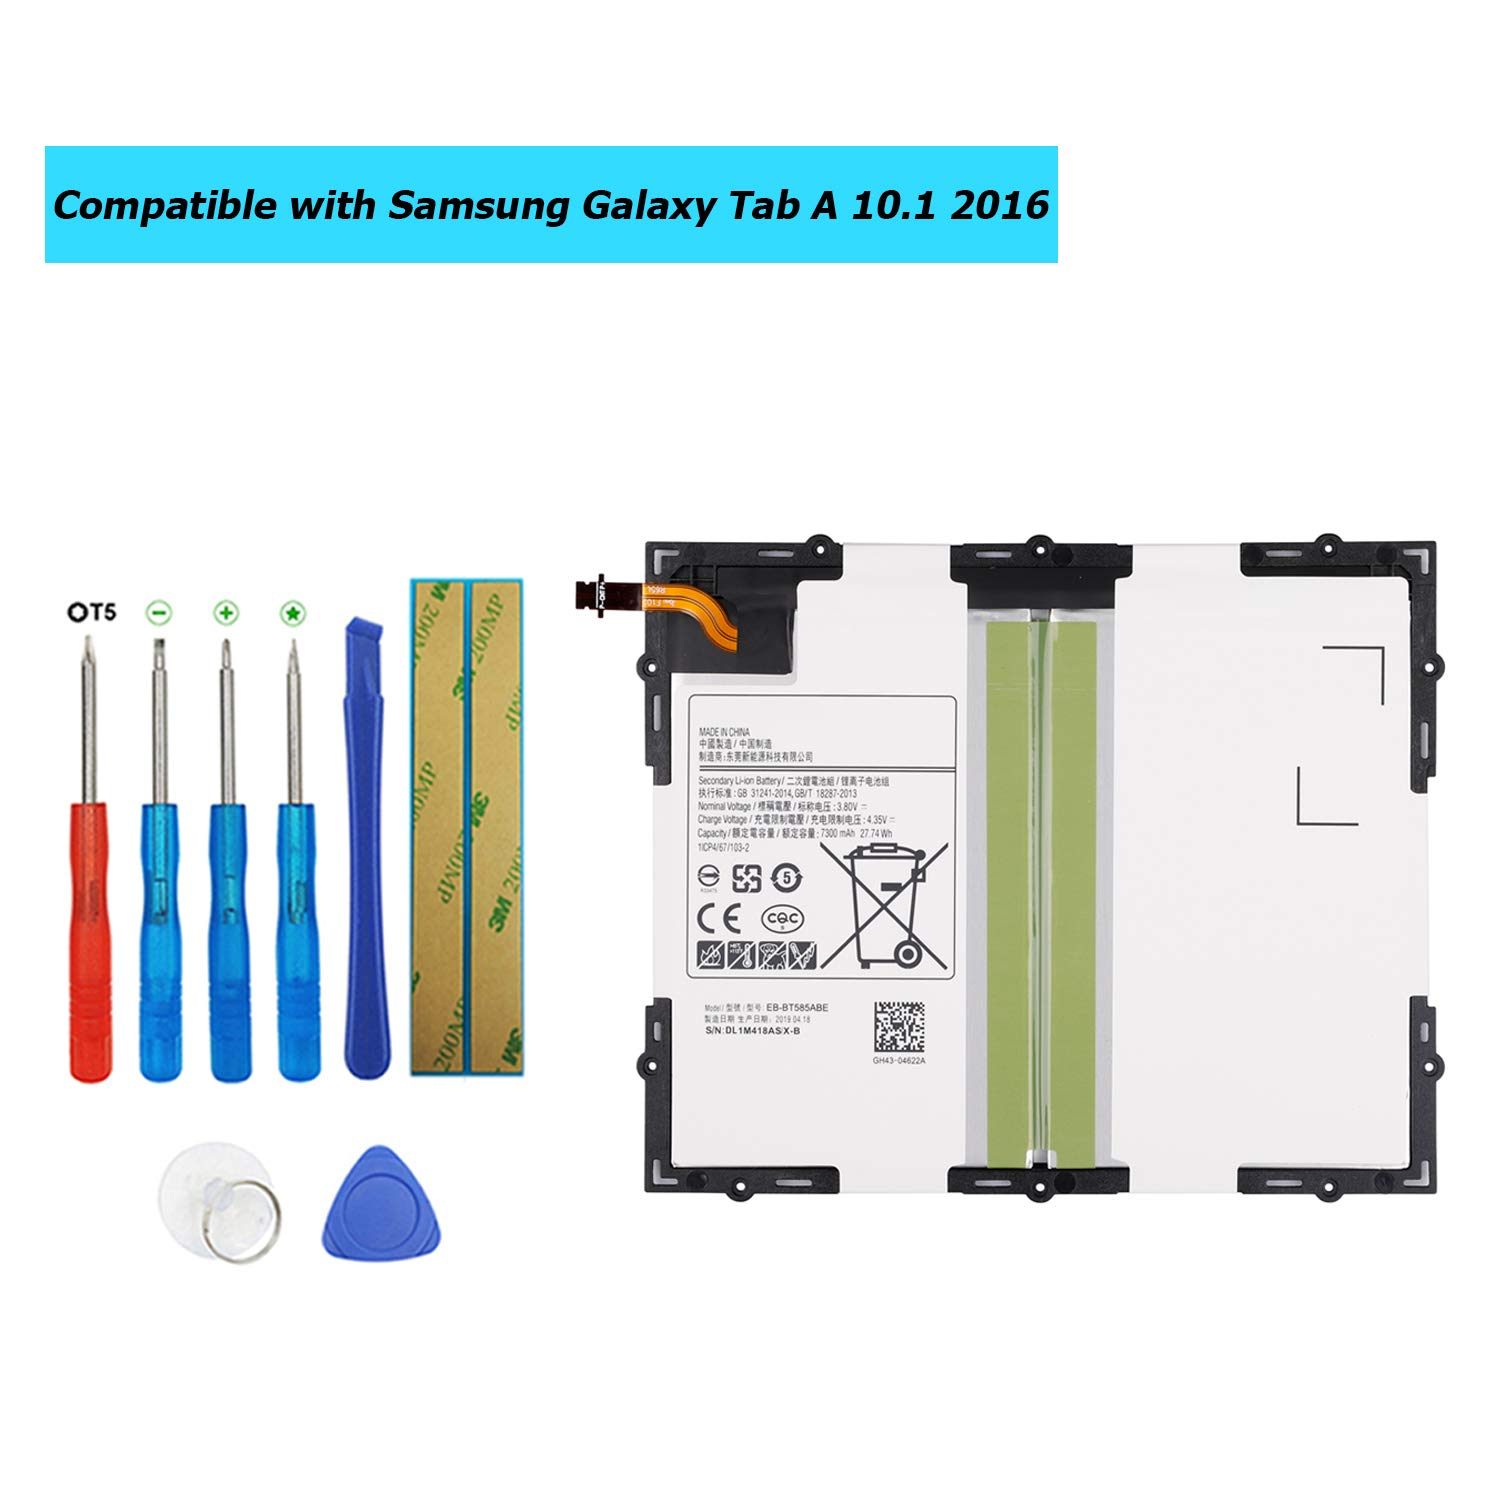 Upplus EB-BT585ABA EB-BT585ABE Replacement Battery Compatible with Samsung Galaxy Tab A 10.1 2016 TD-LTE,Galaxy Tab E 10.1,SM-P580,SM-T585,SM-T585C,SM-T580,SM-T587P with Toolkit